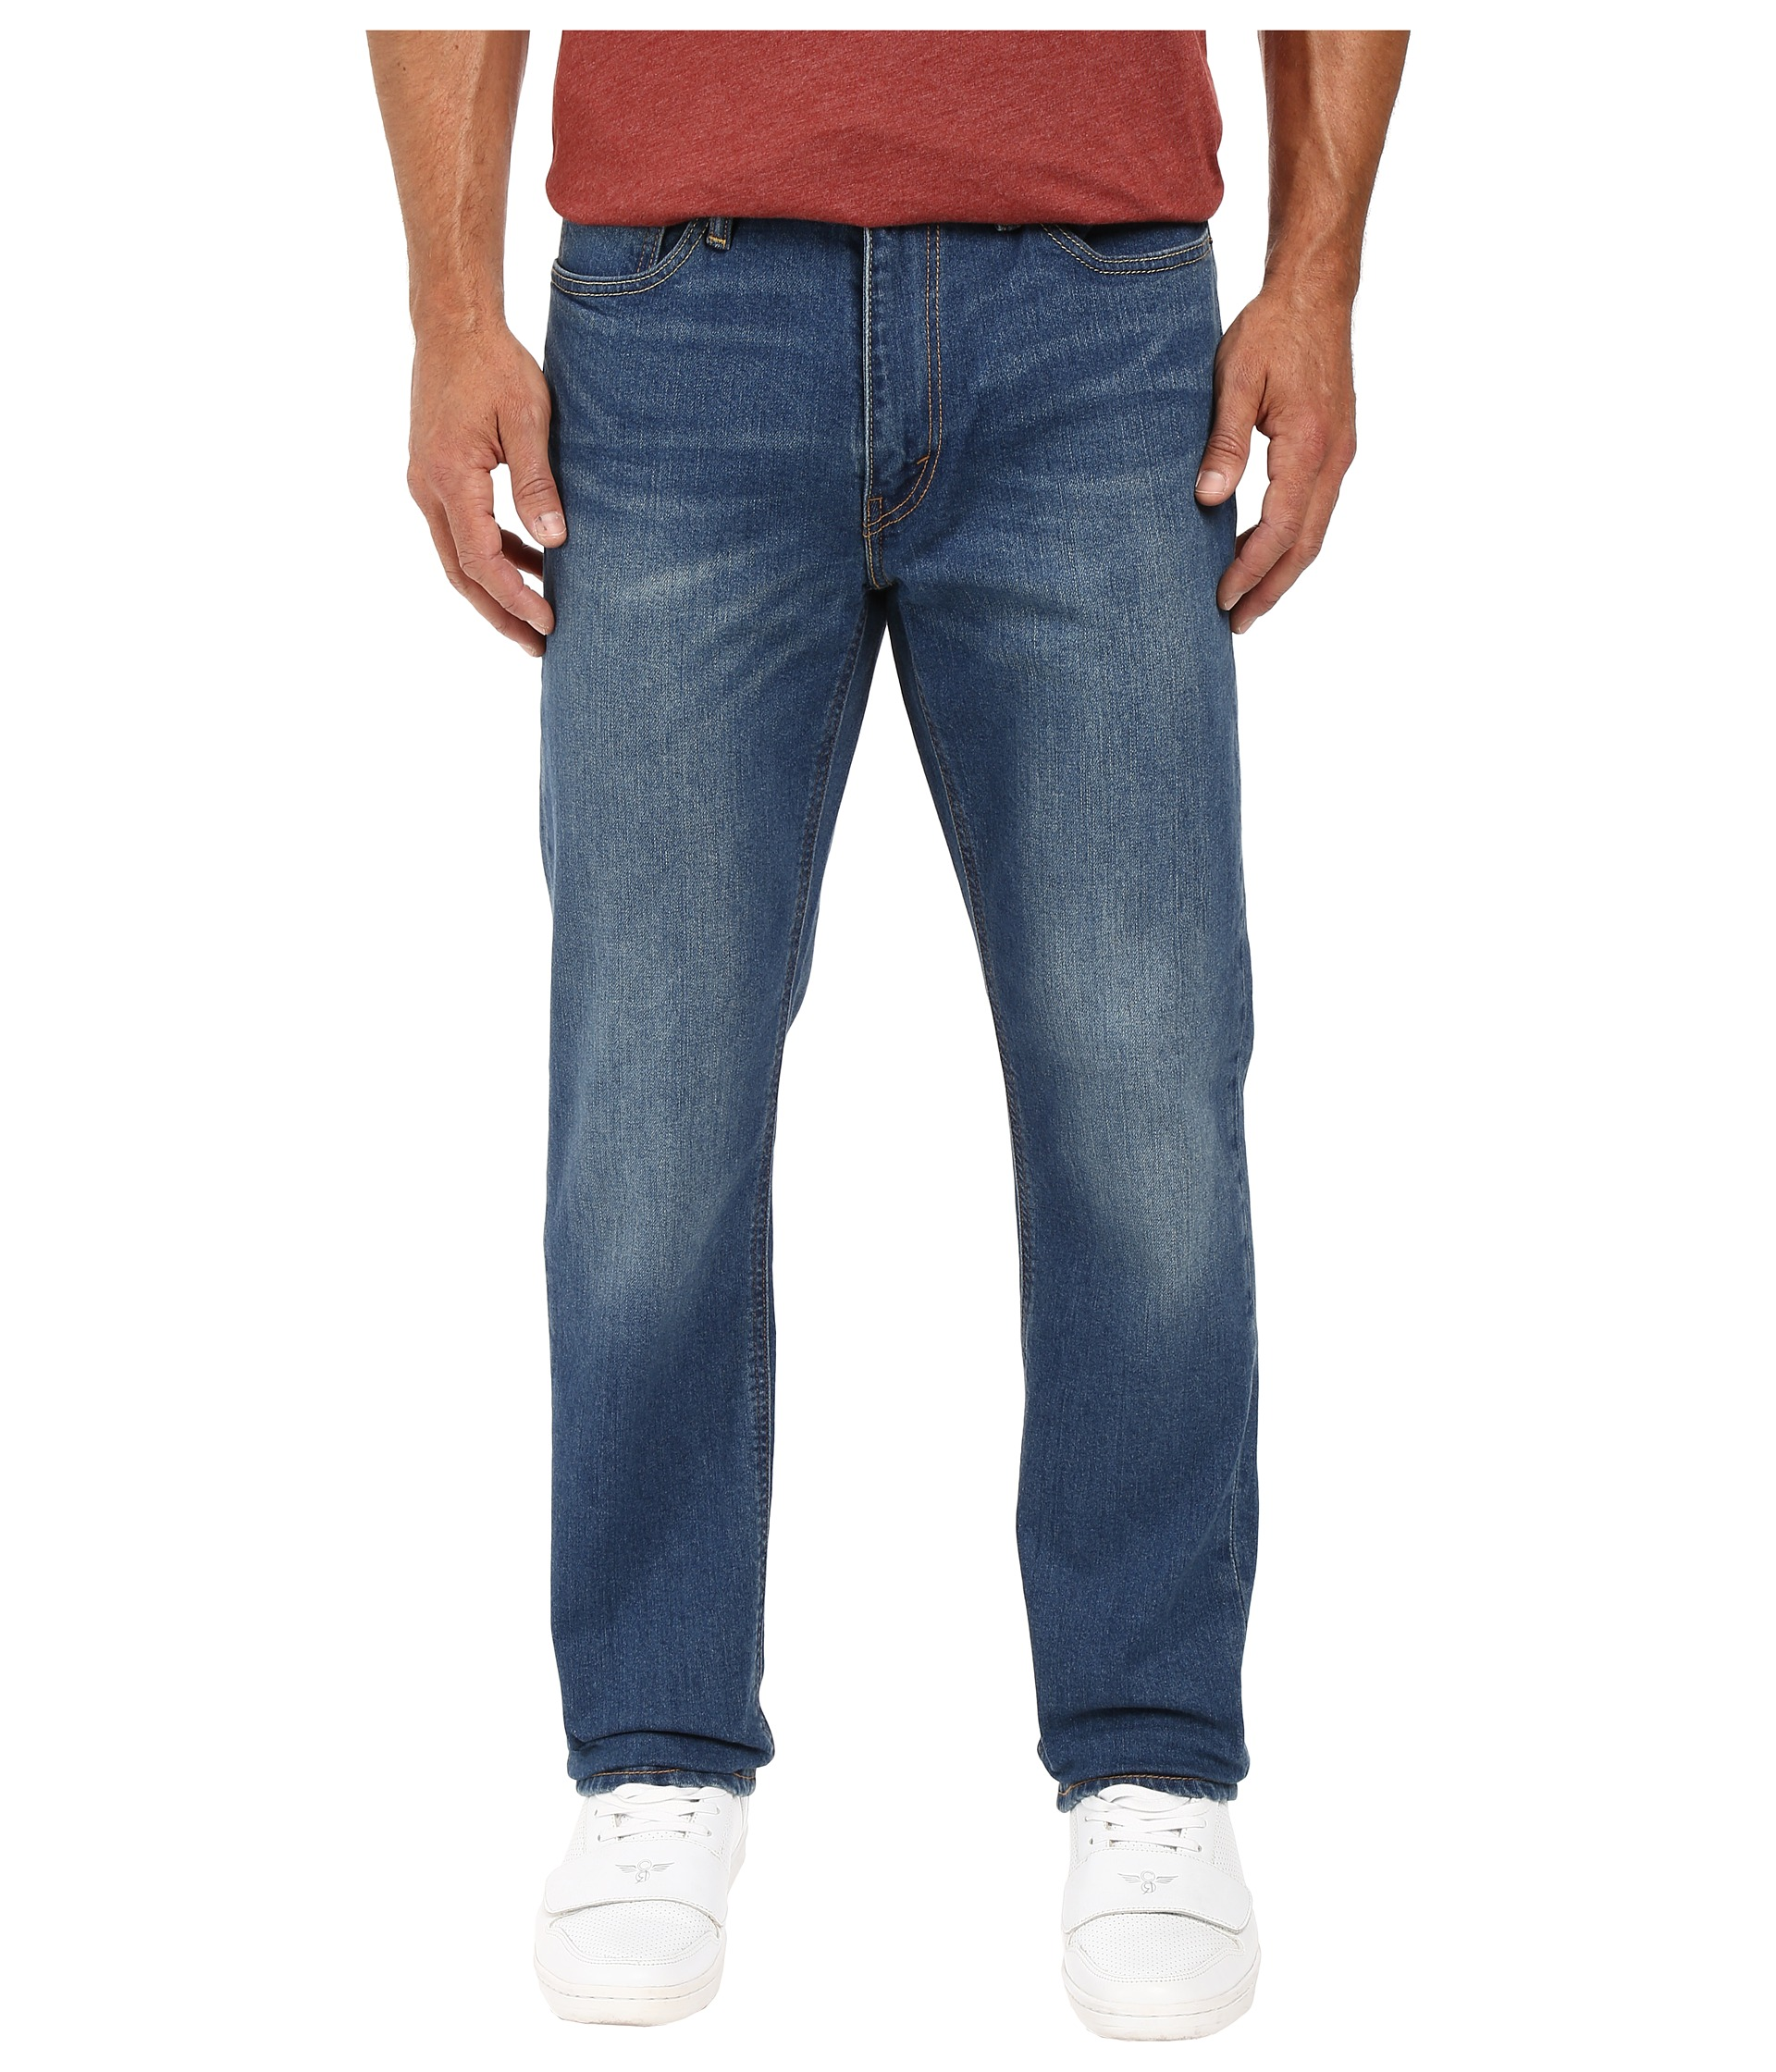 Free shipping BOTH ways on Jeans, Men, Slim Fit, from our vast selection of styles. Fast delivery, and 24/7/ real-person service with a smile. Click or call